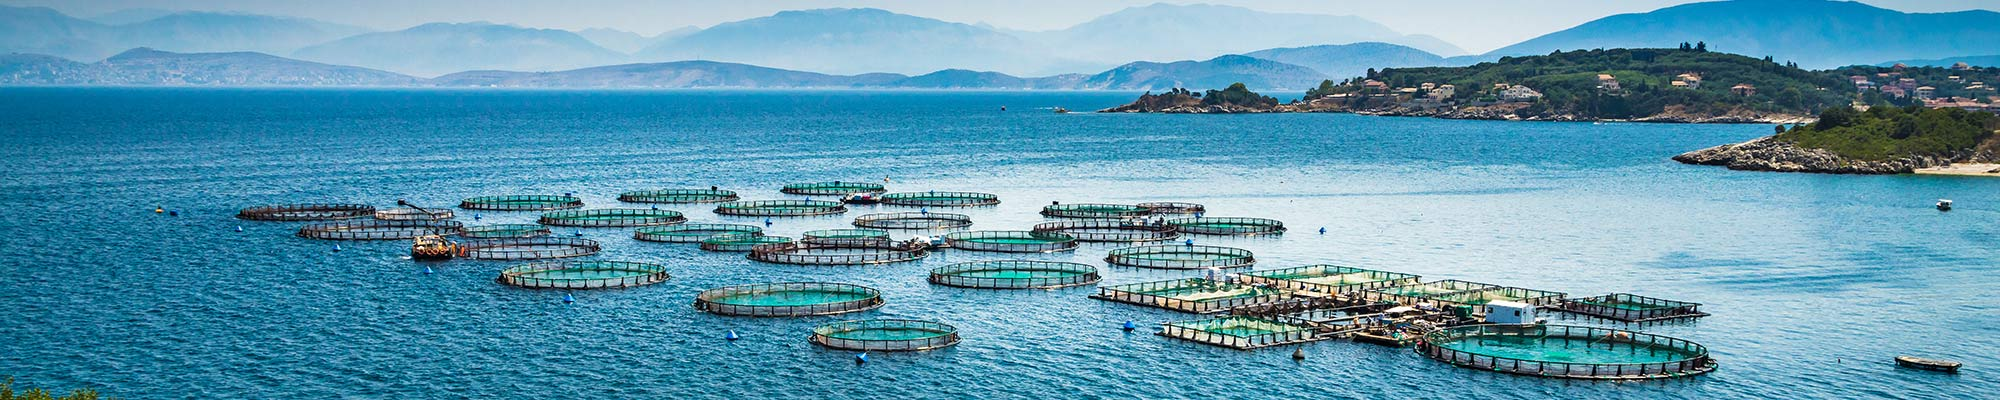 Aquaculture and fisheries